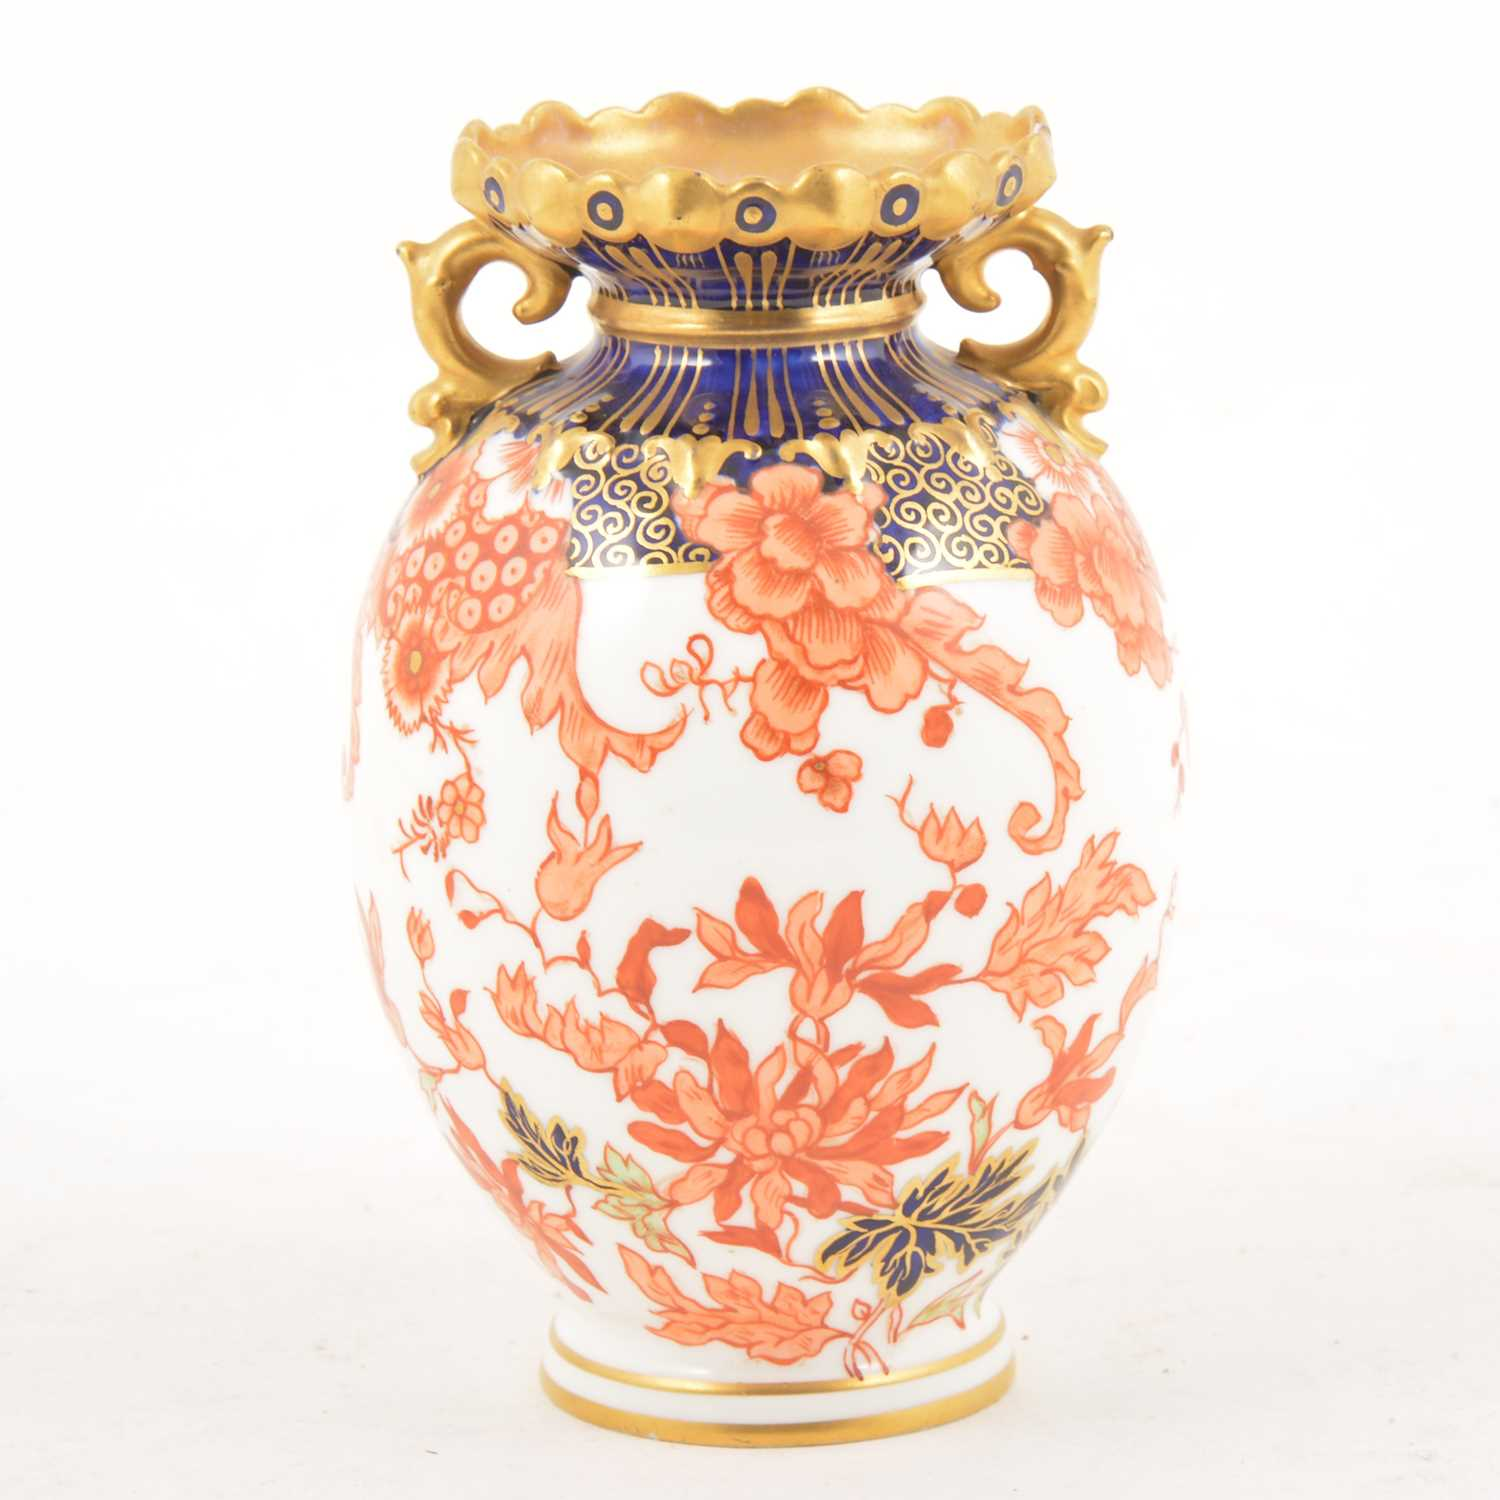 Lot 3 - A Royal Crown Derby twin-handled ovoid vase.